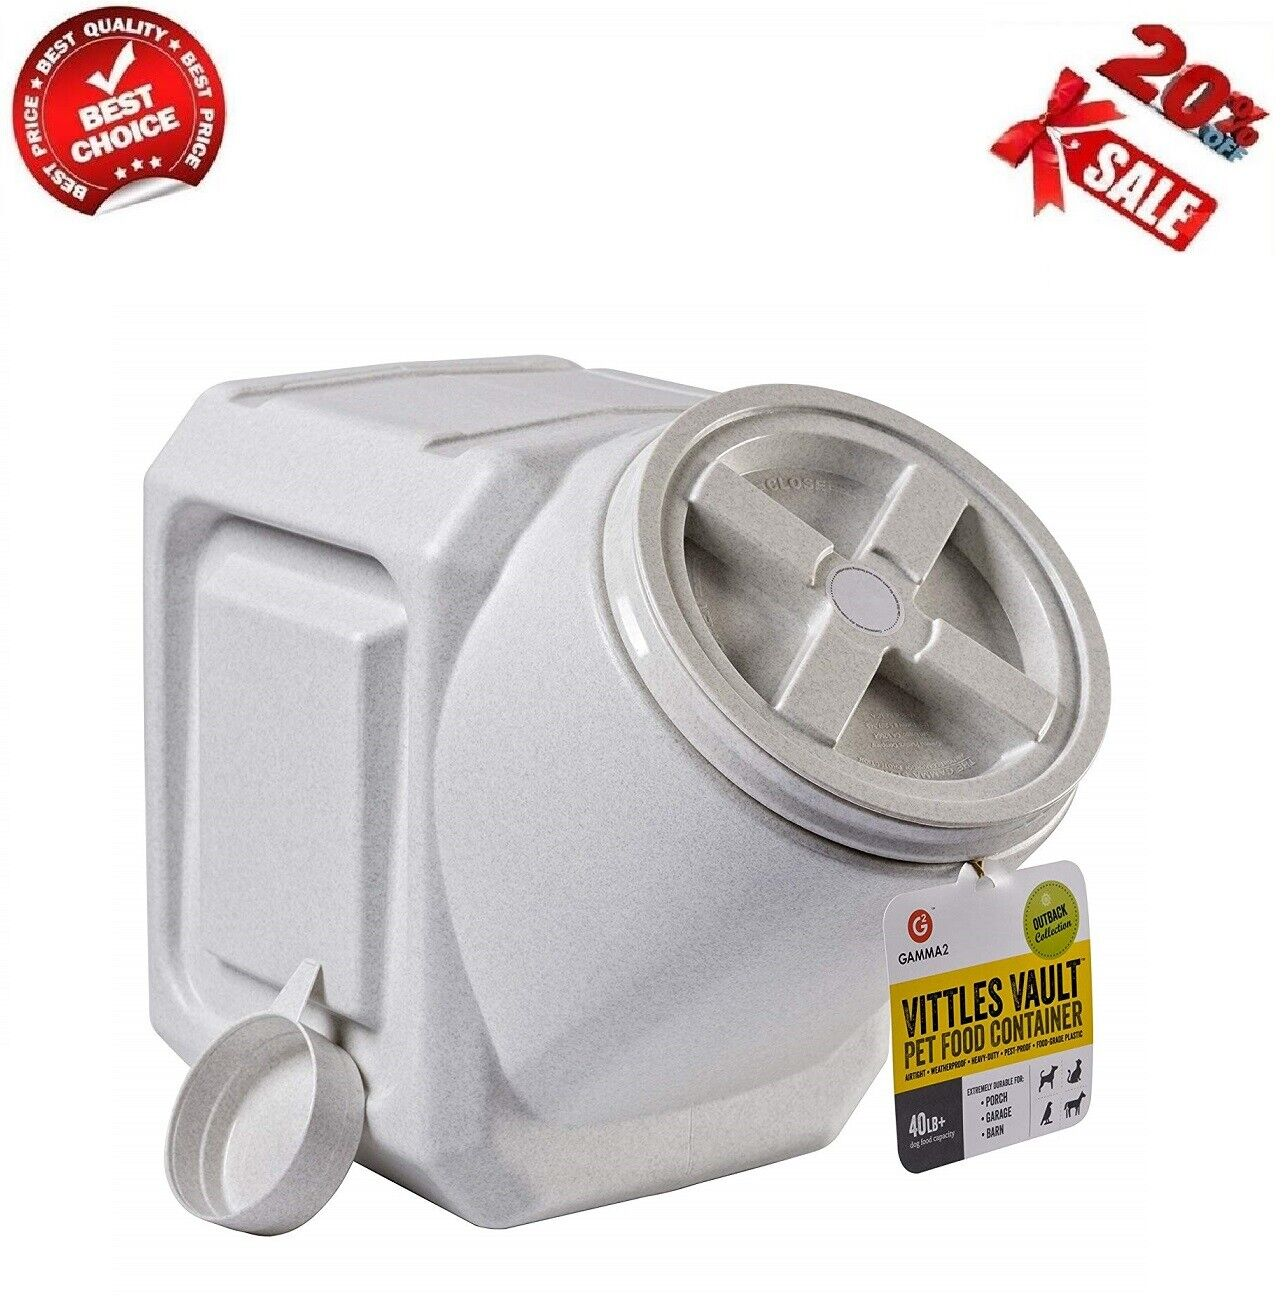 New Vittles Vault 40-Pound Stackable Pet Food Storage Dog Cat Container Airtight